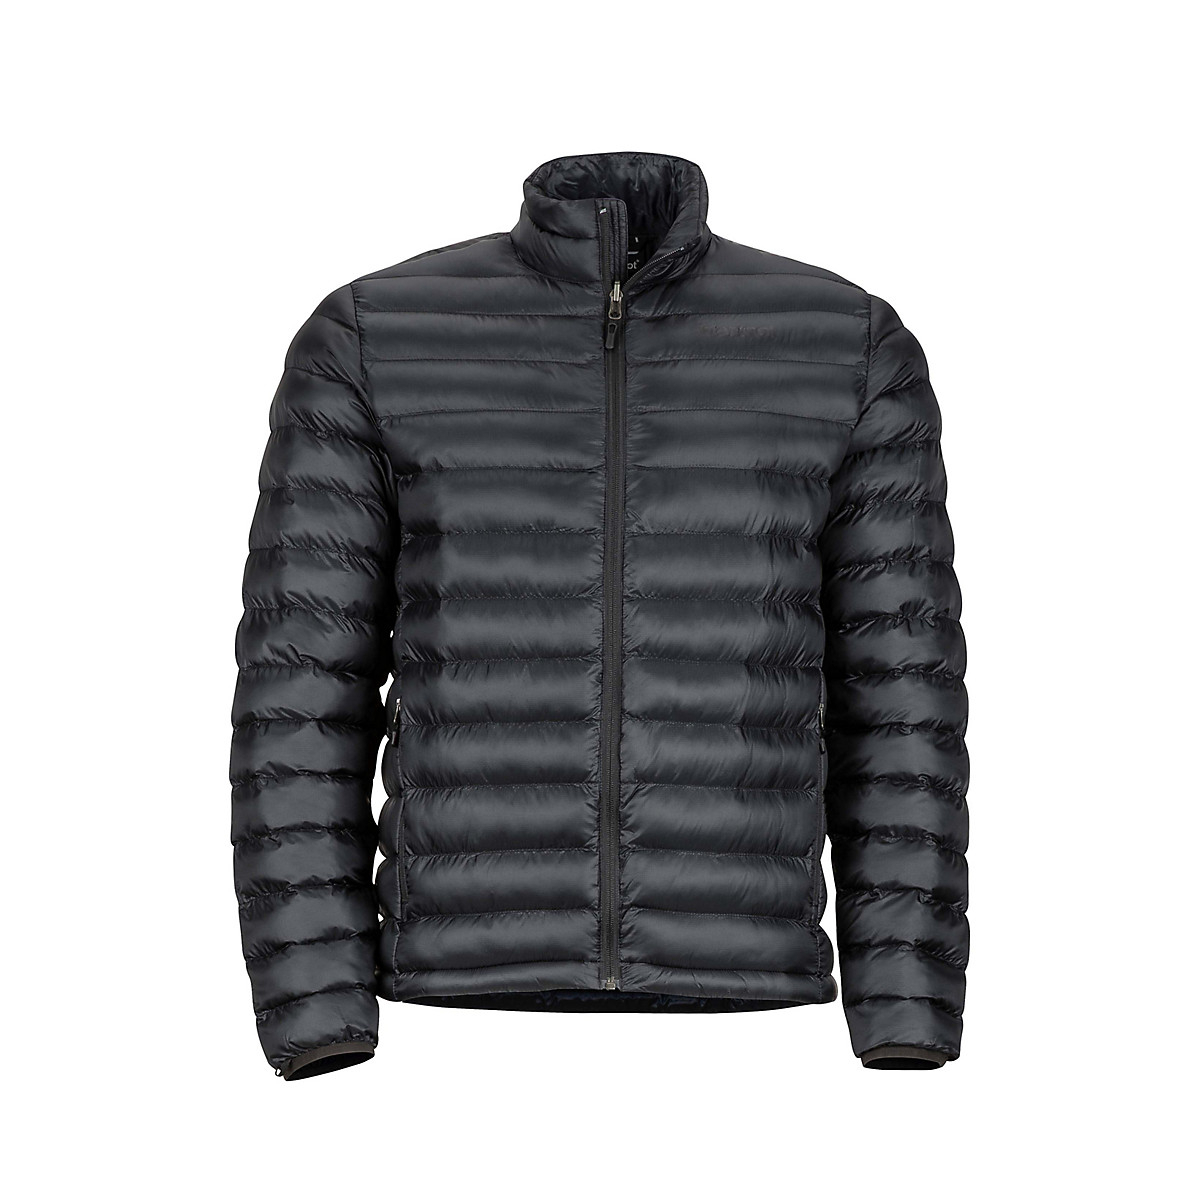 Marmot Men's Solus Featherless Jacket - Black, L